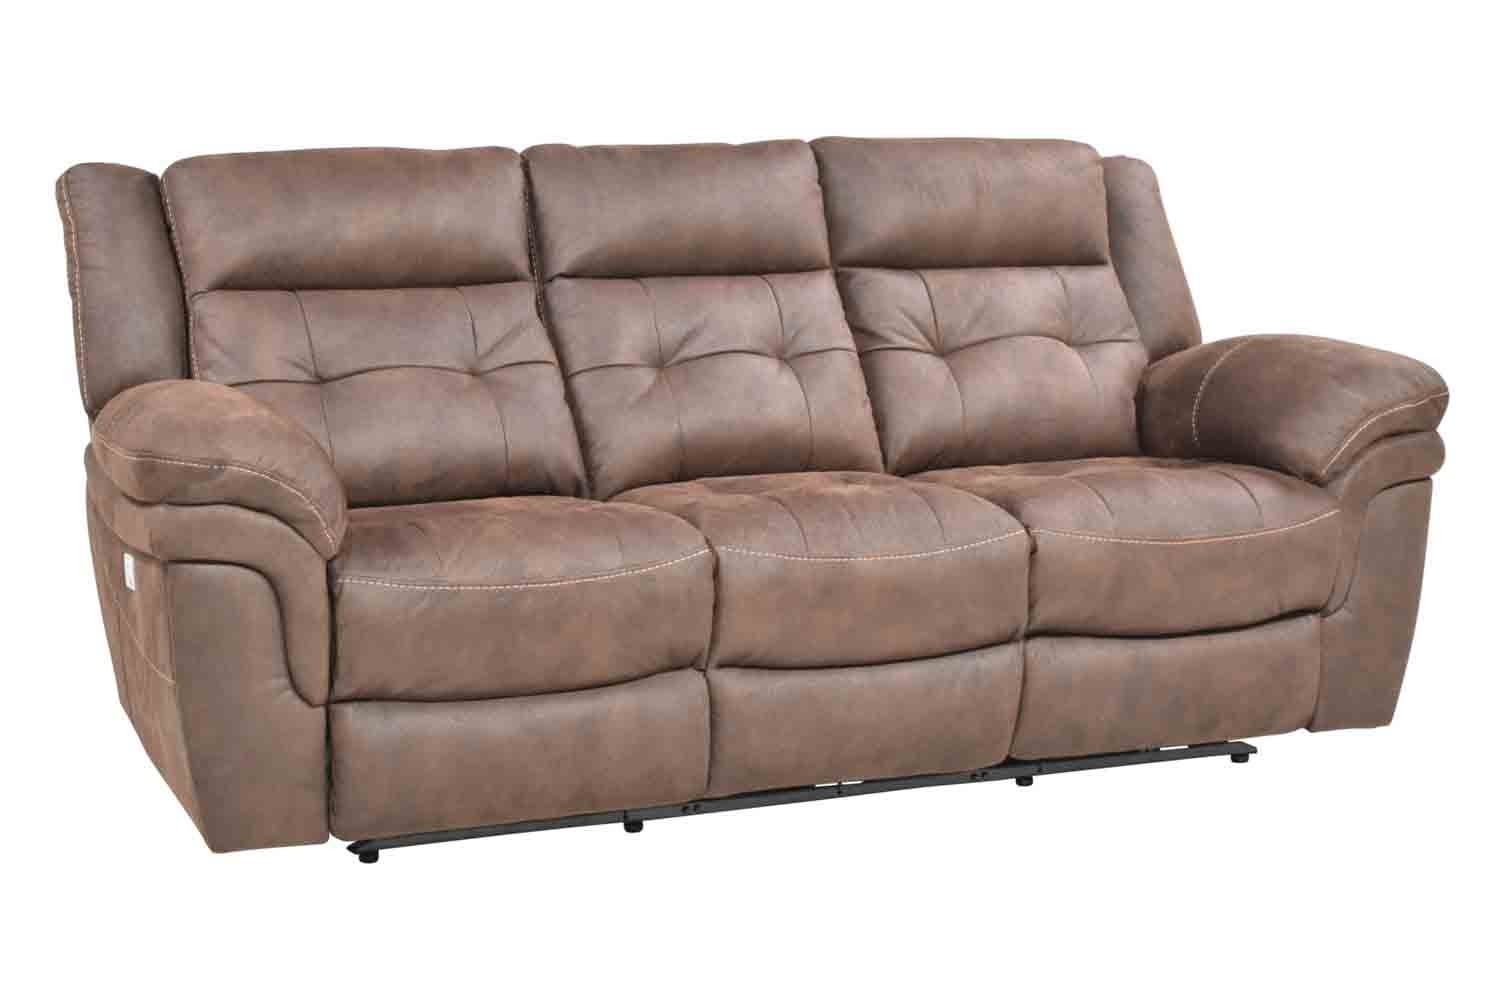 Glenn Sofa Media Image 1